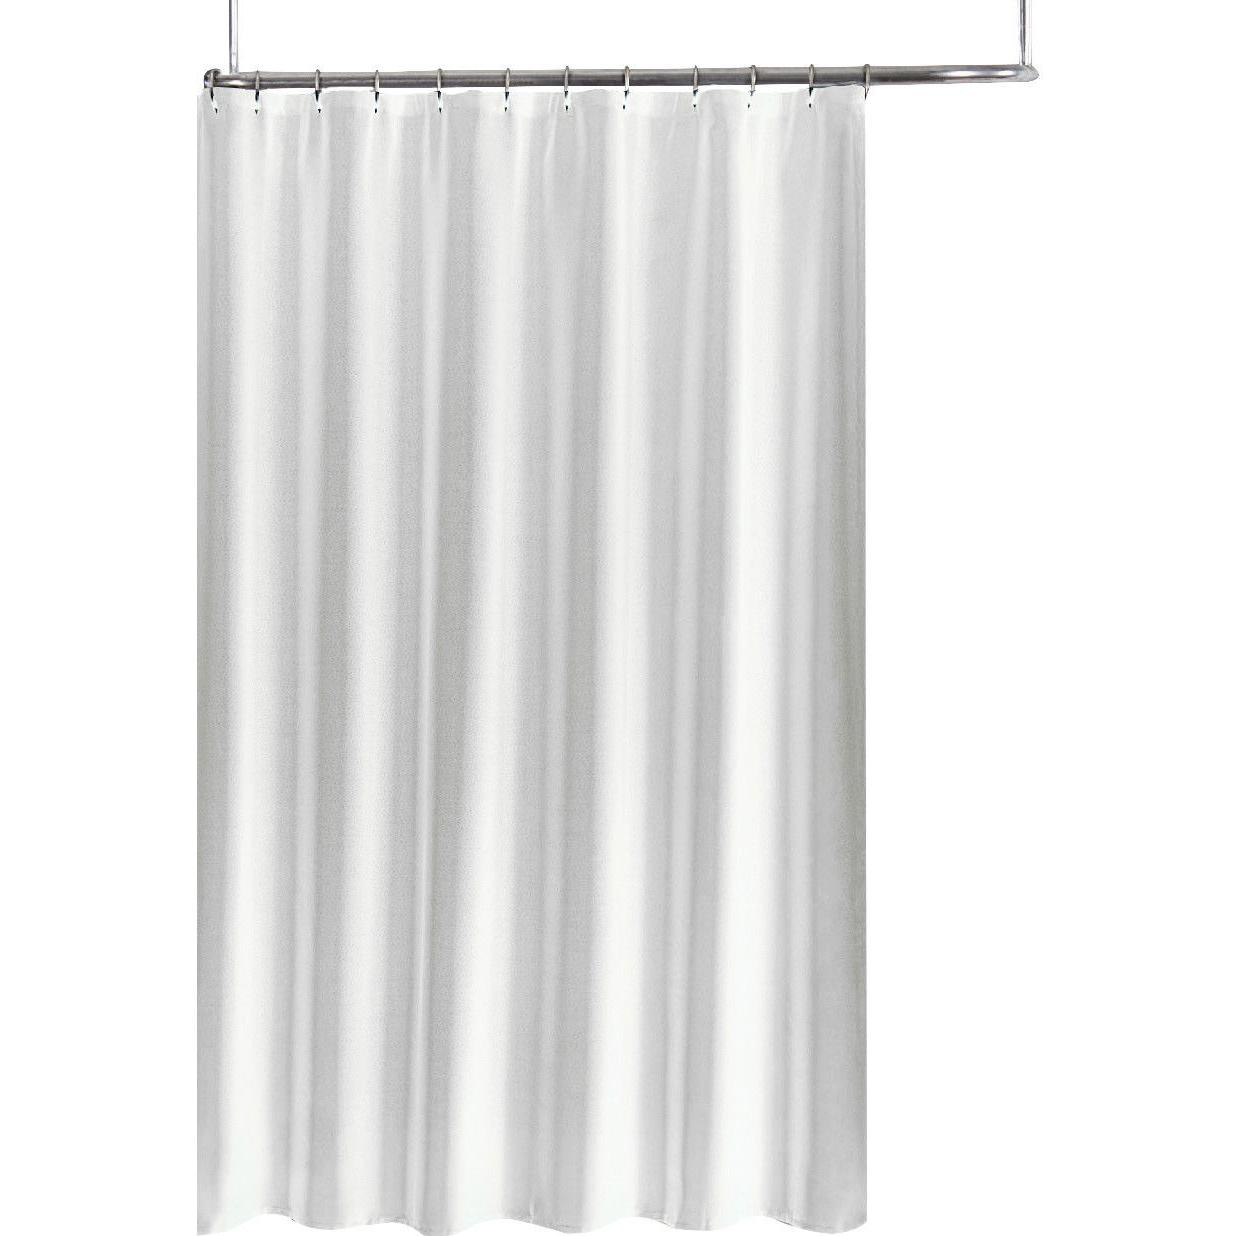 extra long fabric shower curtain liner 70